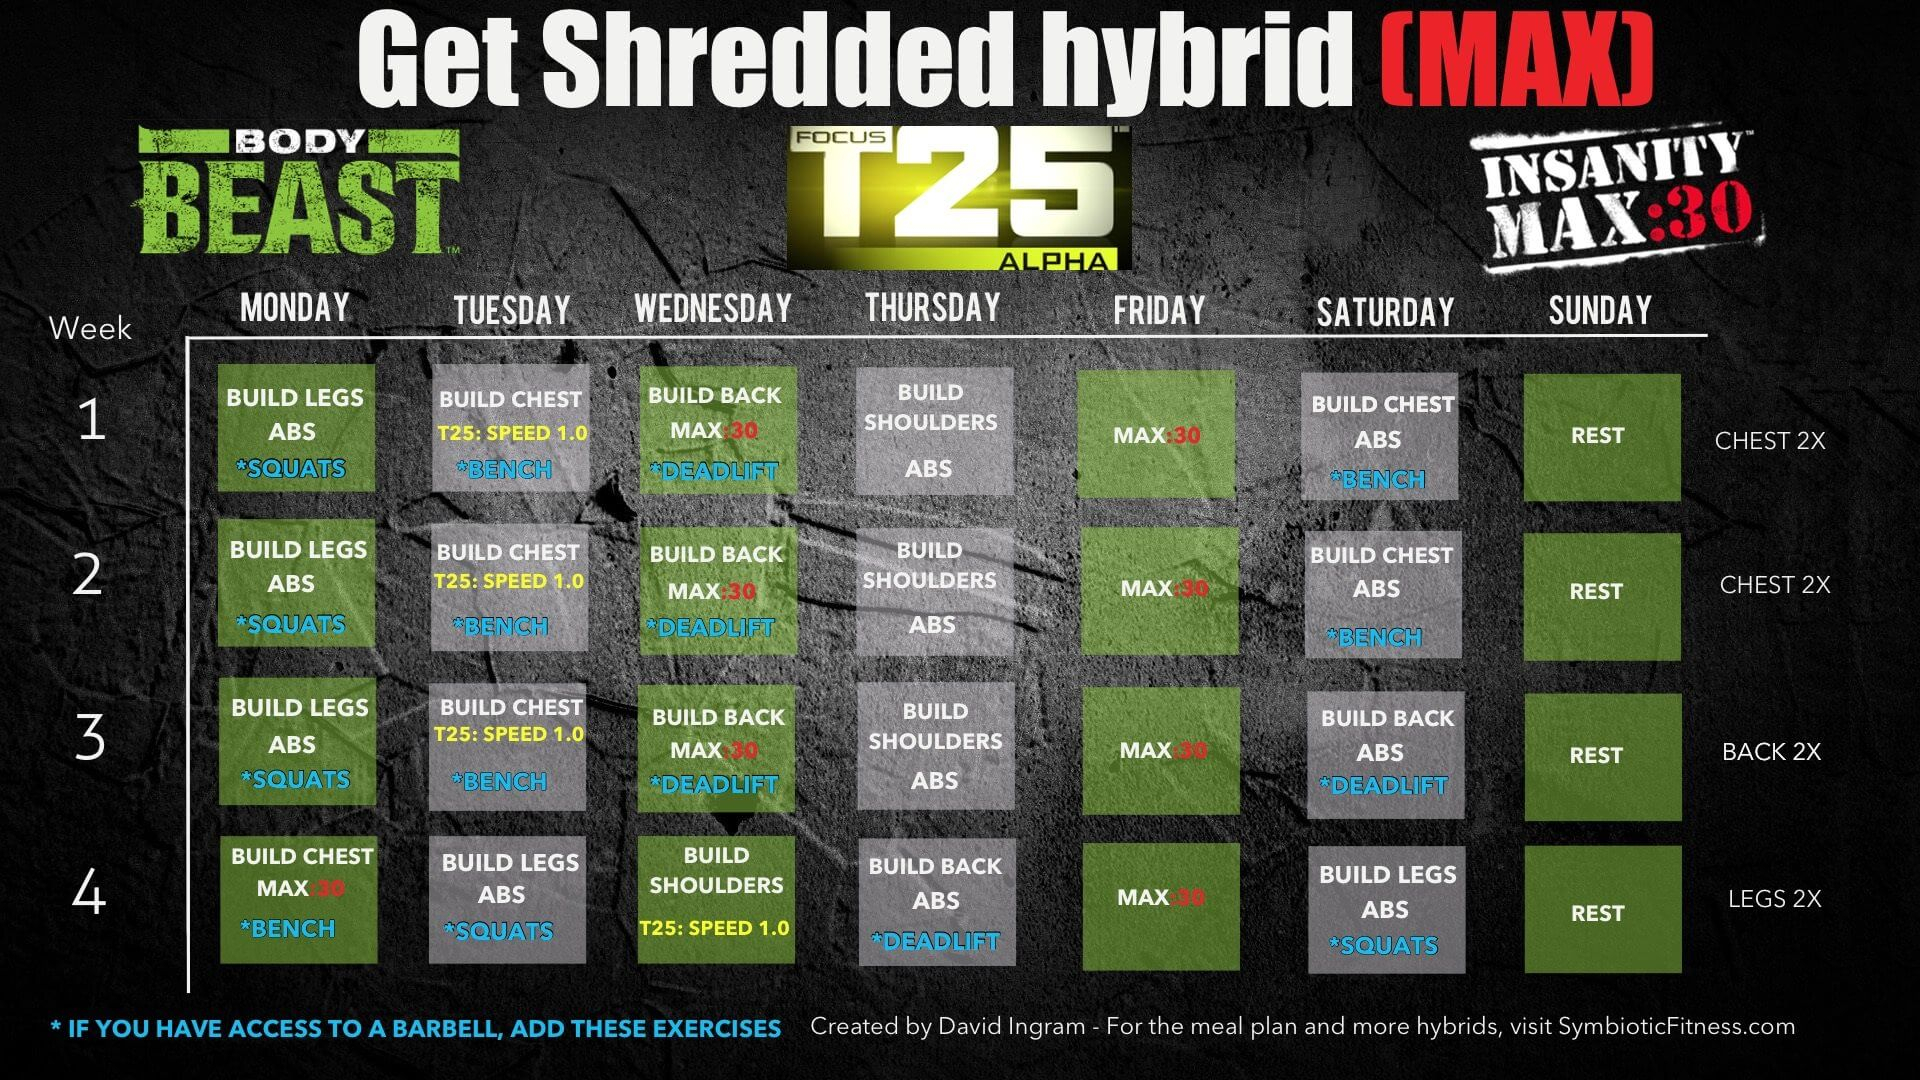 Bodybeast Hybrid With Insanity Max 30 And T25  Get Shredded pertaining to Insanity Body Beast Hybrid